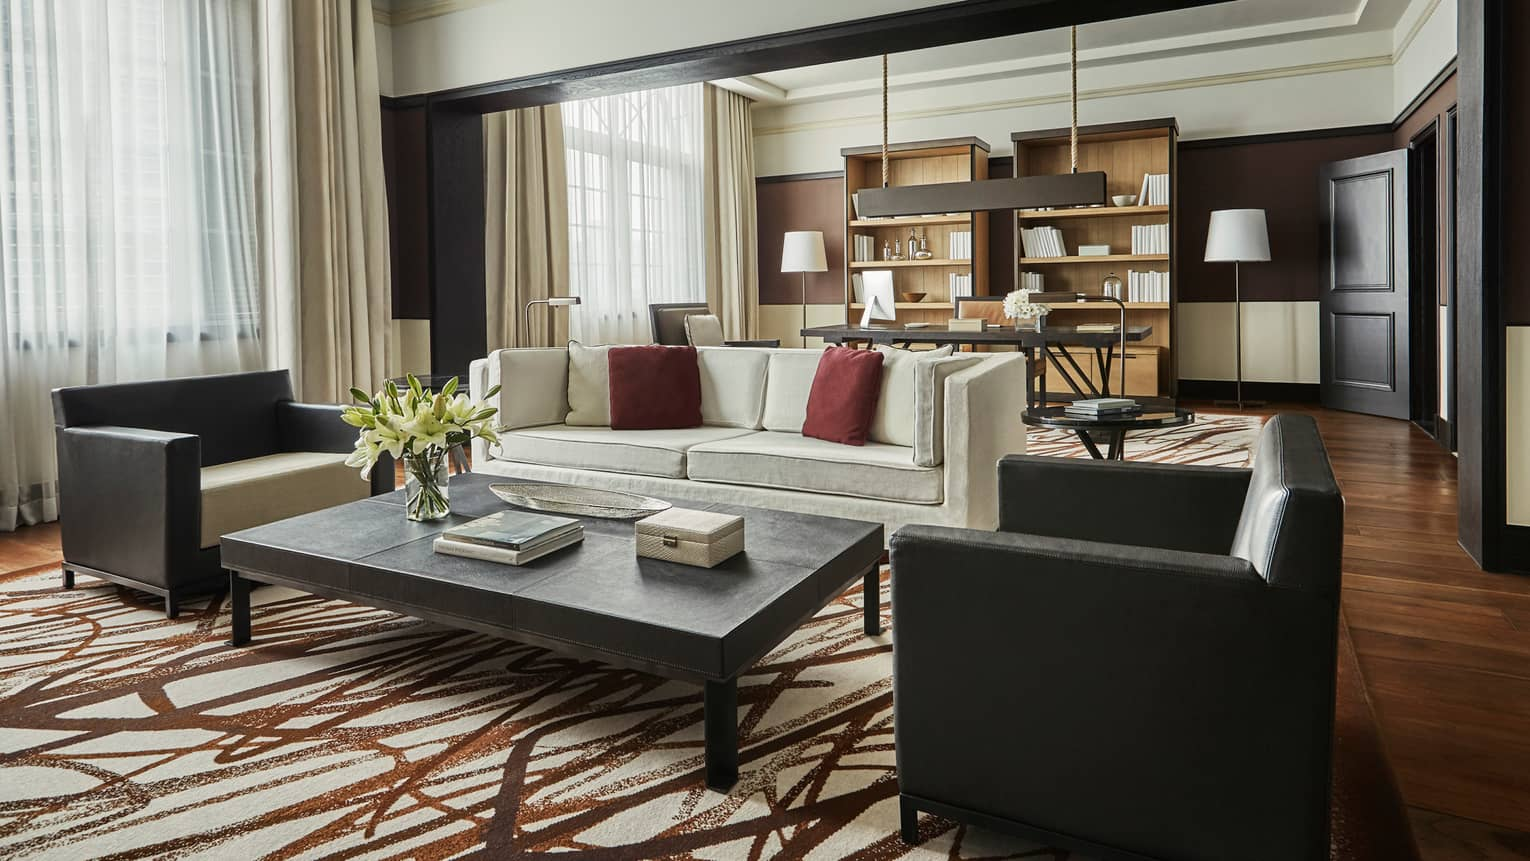 Bright Governor Suite sofa and two armchairs by coffee table, brown-and-white rug